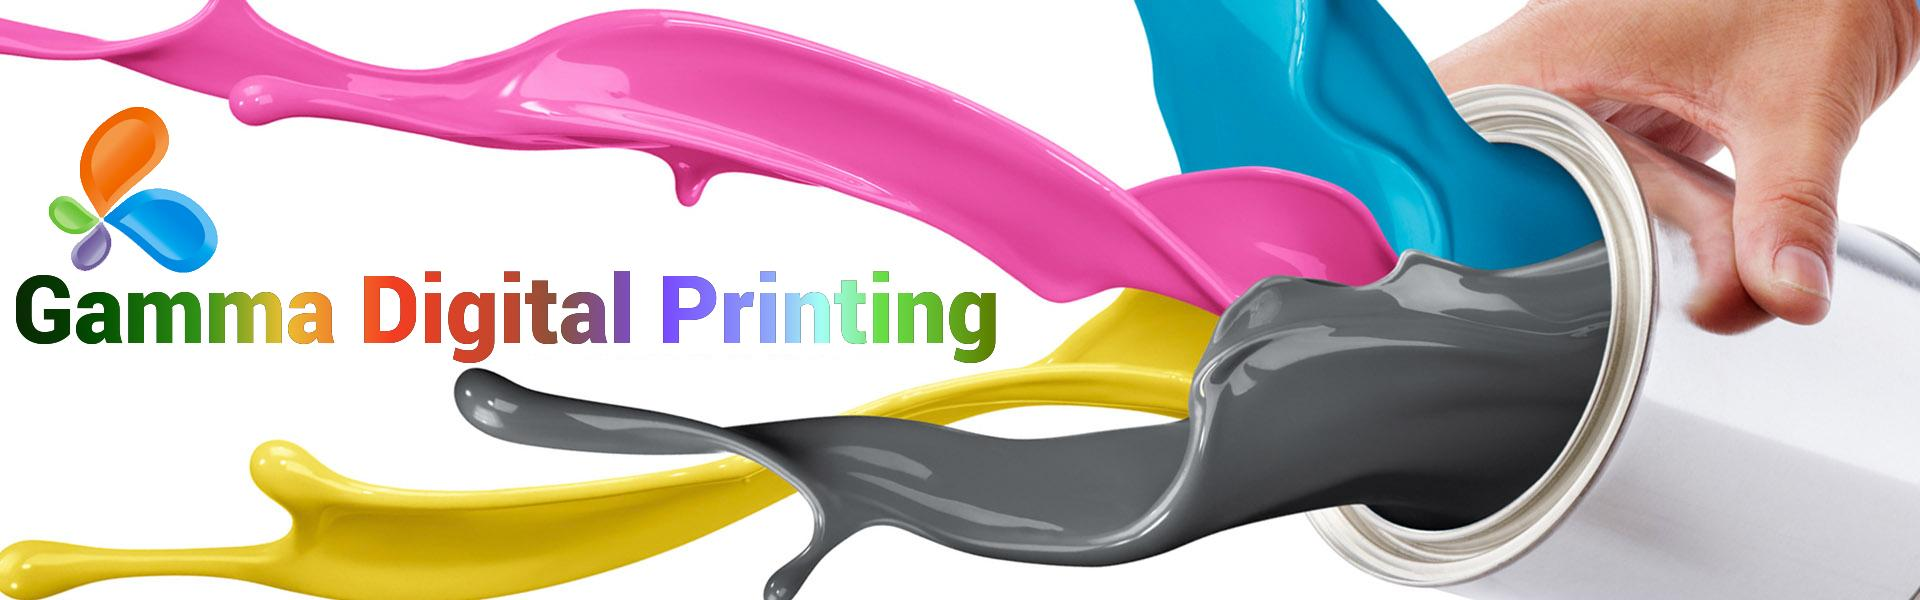 Gamma digital printing